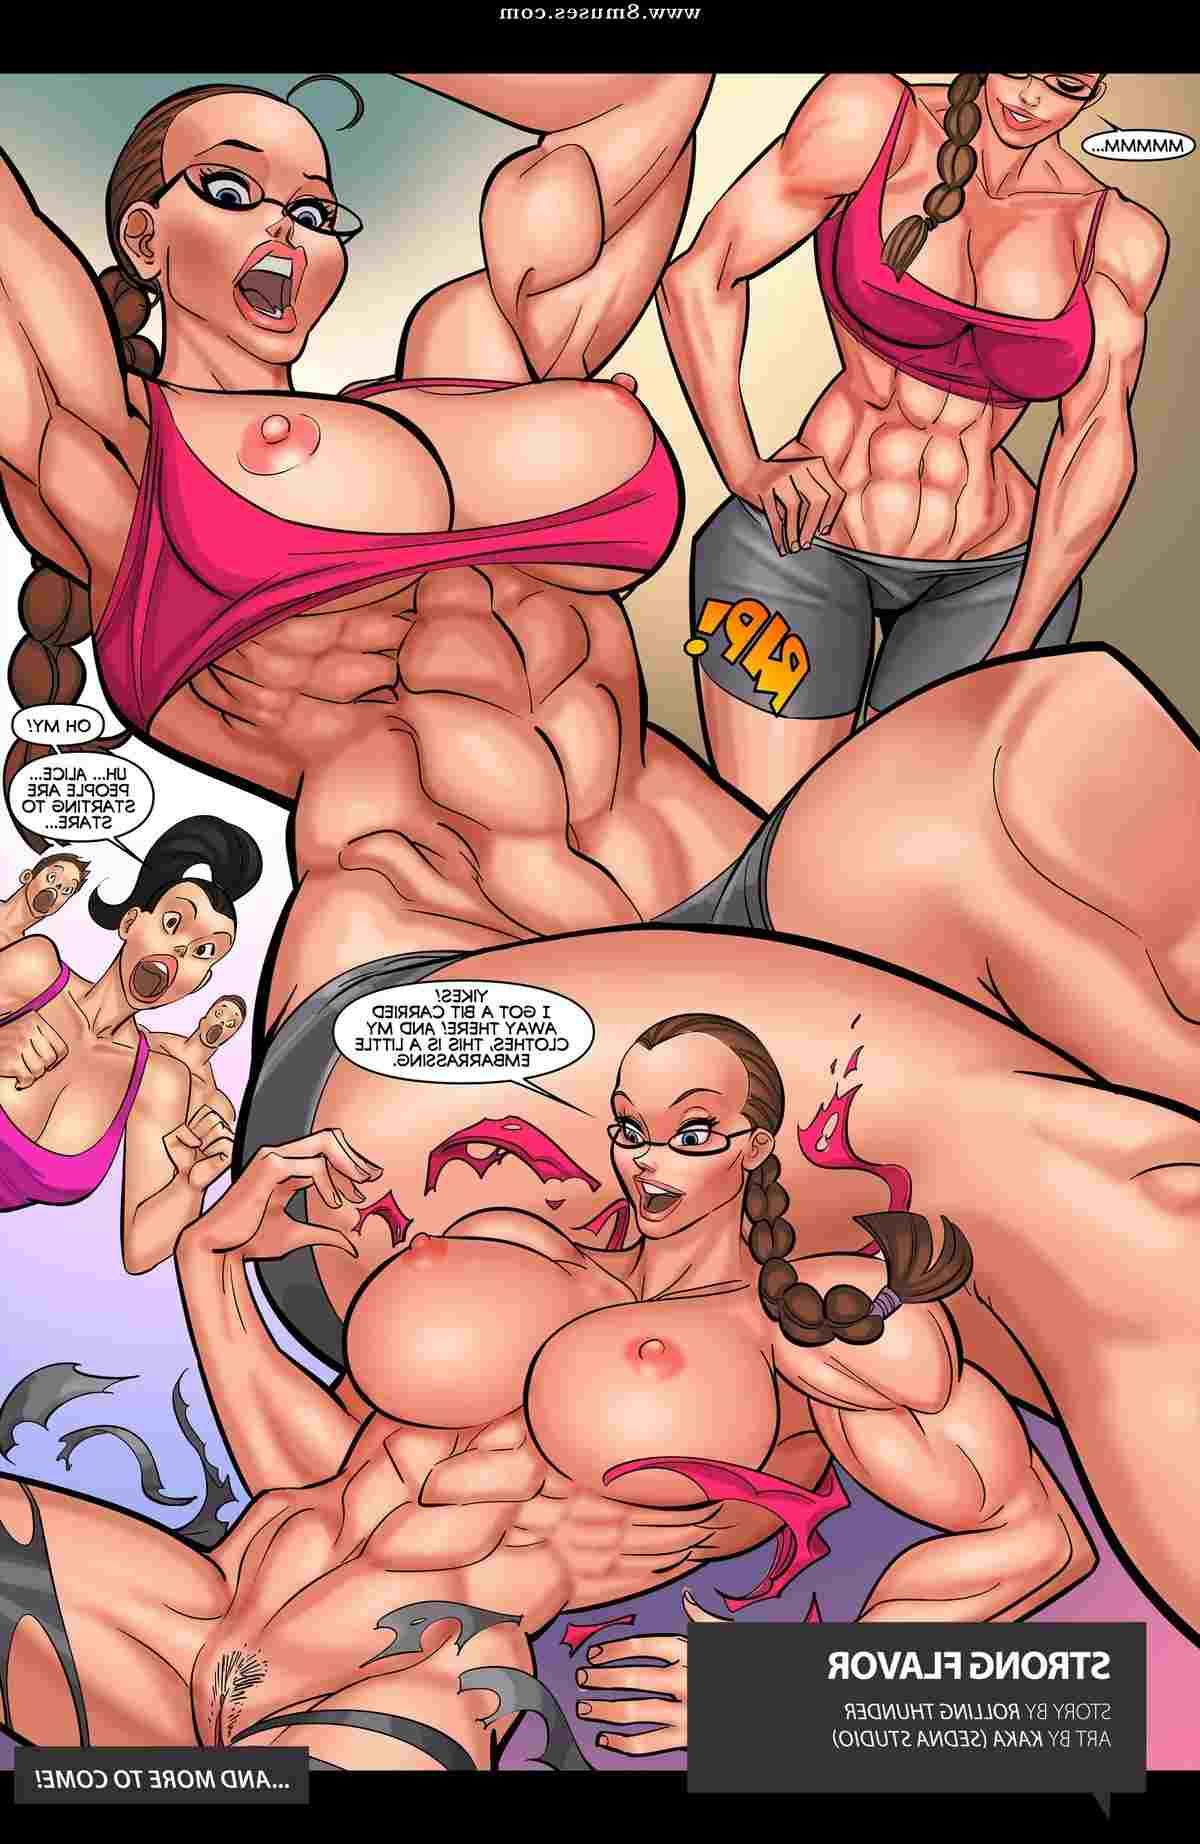 MuscleFan-Comics/Leveling-The-Field Leveling_The_Field__8muses_-_Sex_and_Porn_Comics_22.jpg